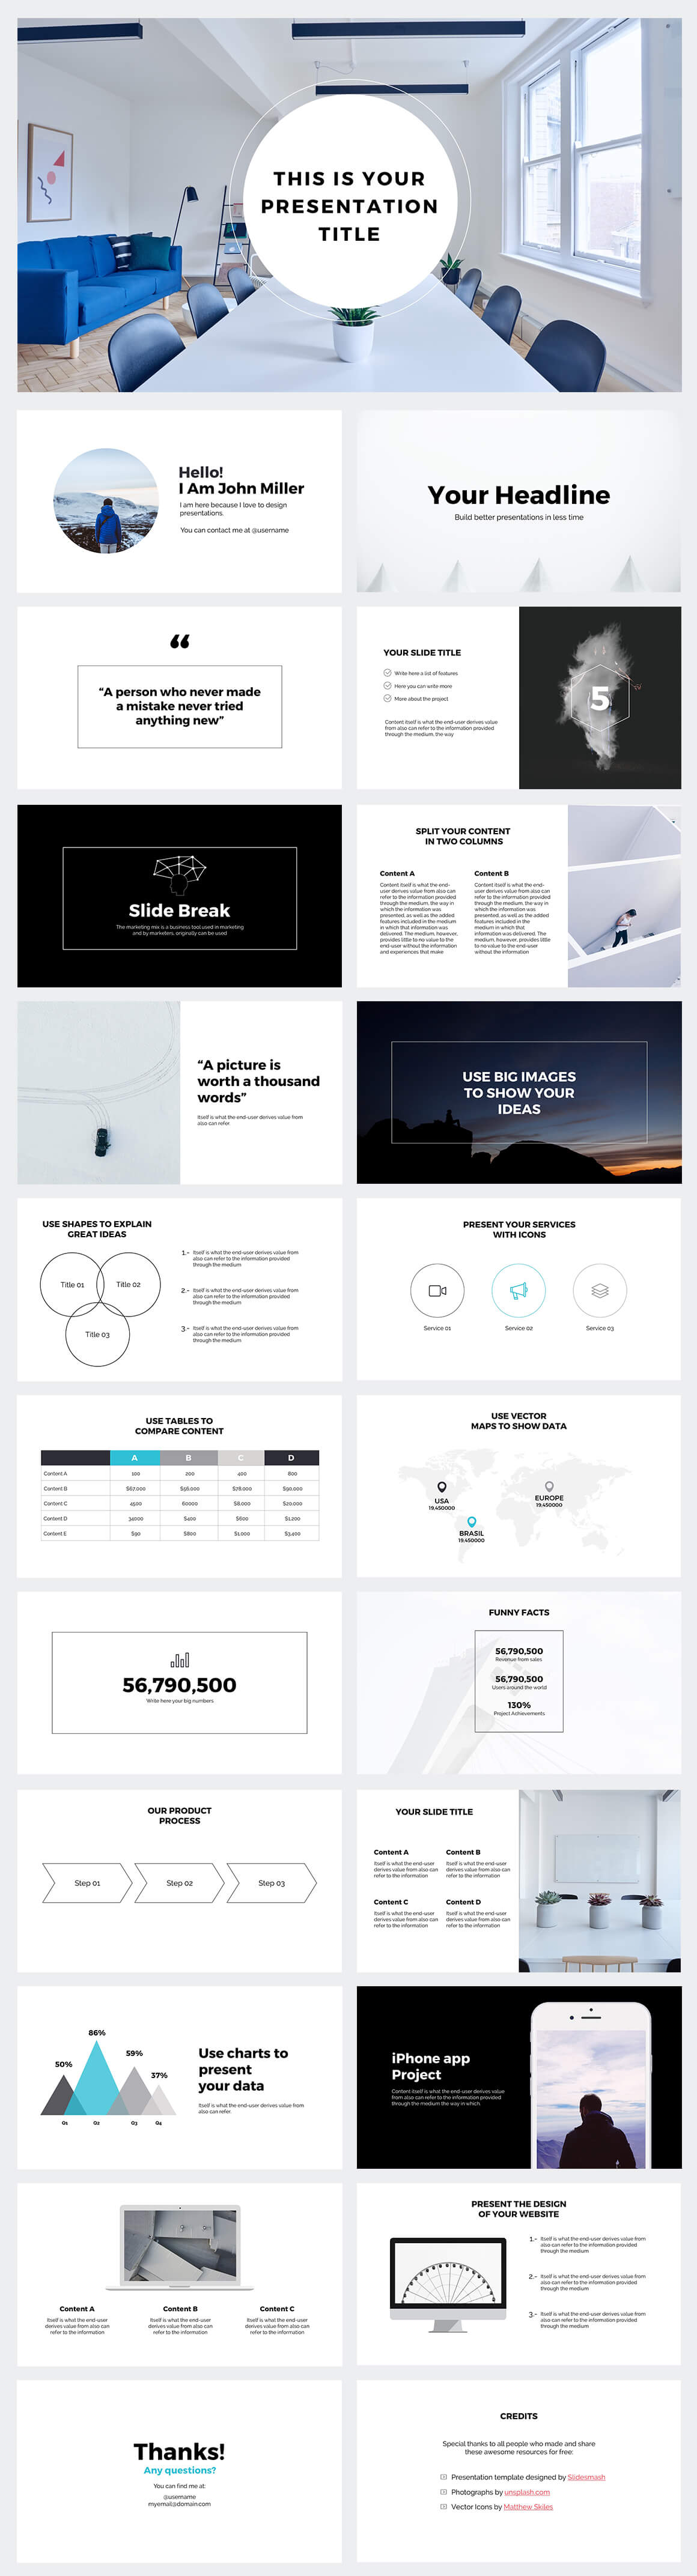 22 free business strategy powerpoint slides templates business strategy powerpoint template large preview friedricerecipe